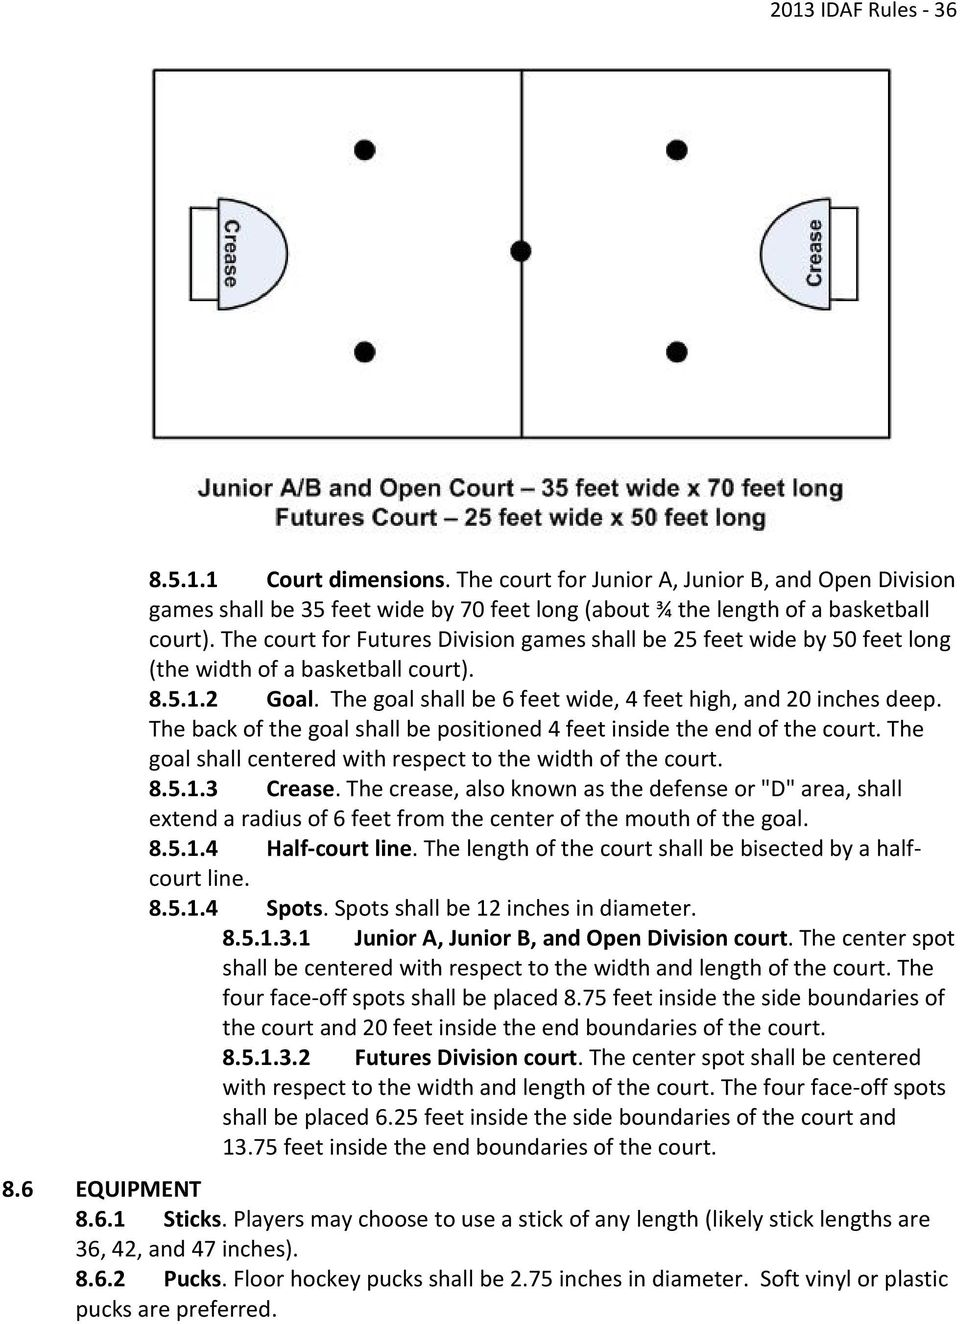 The back of the goal shall be positioned 4 feet inside the end of the court. The goal shall centered with respect to the width of the court. 8.5.1.3 Crease.